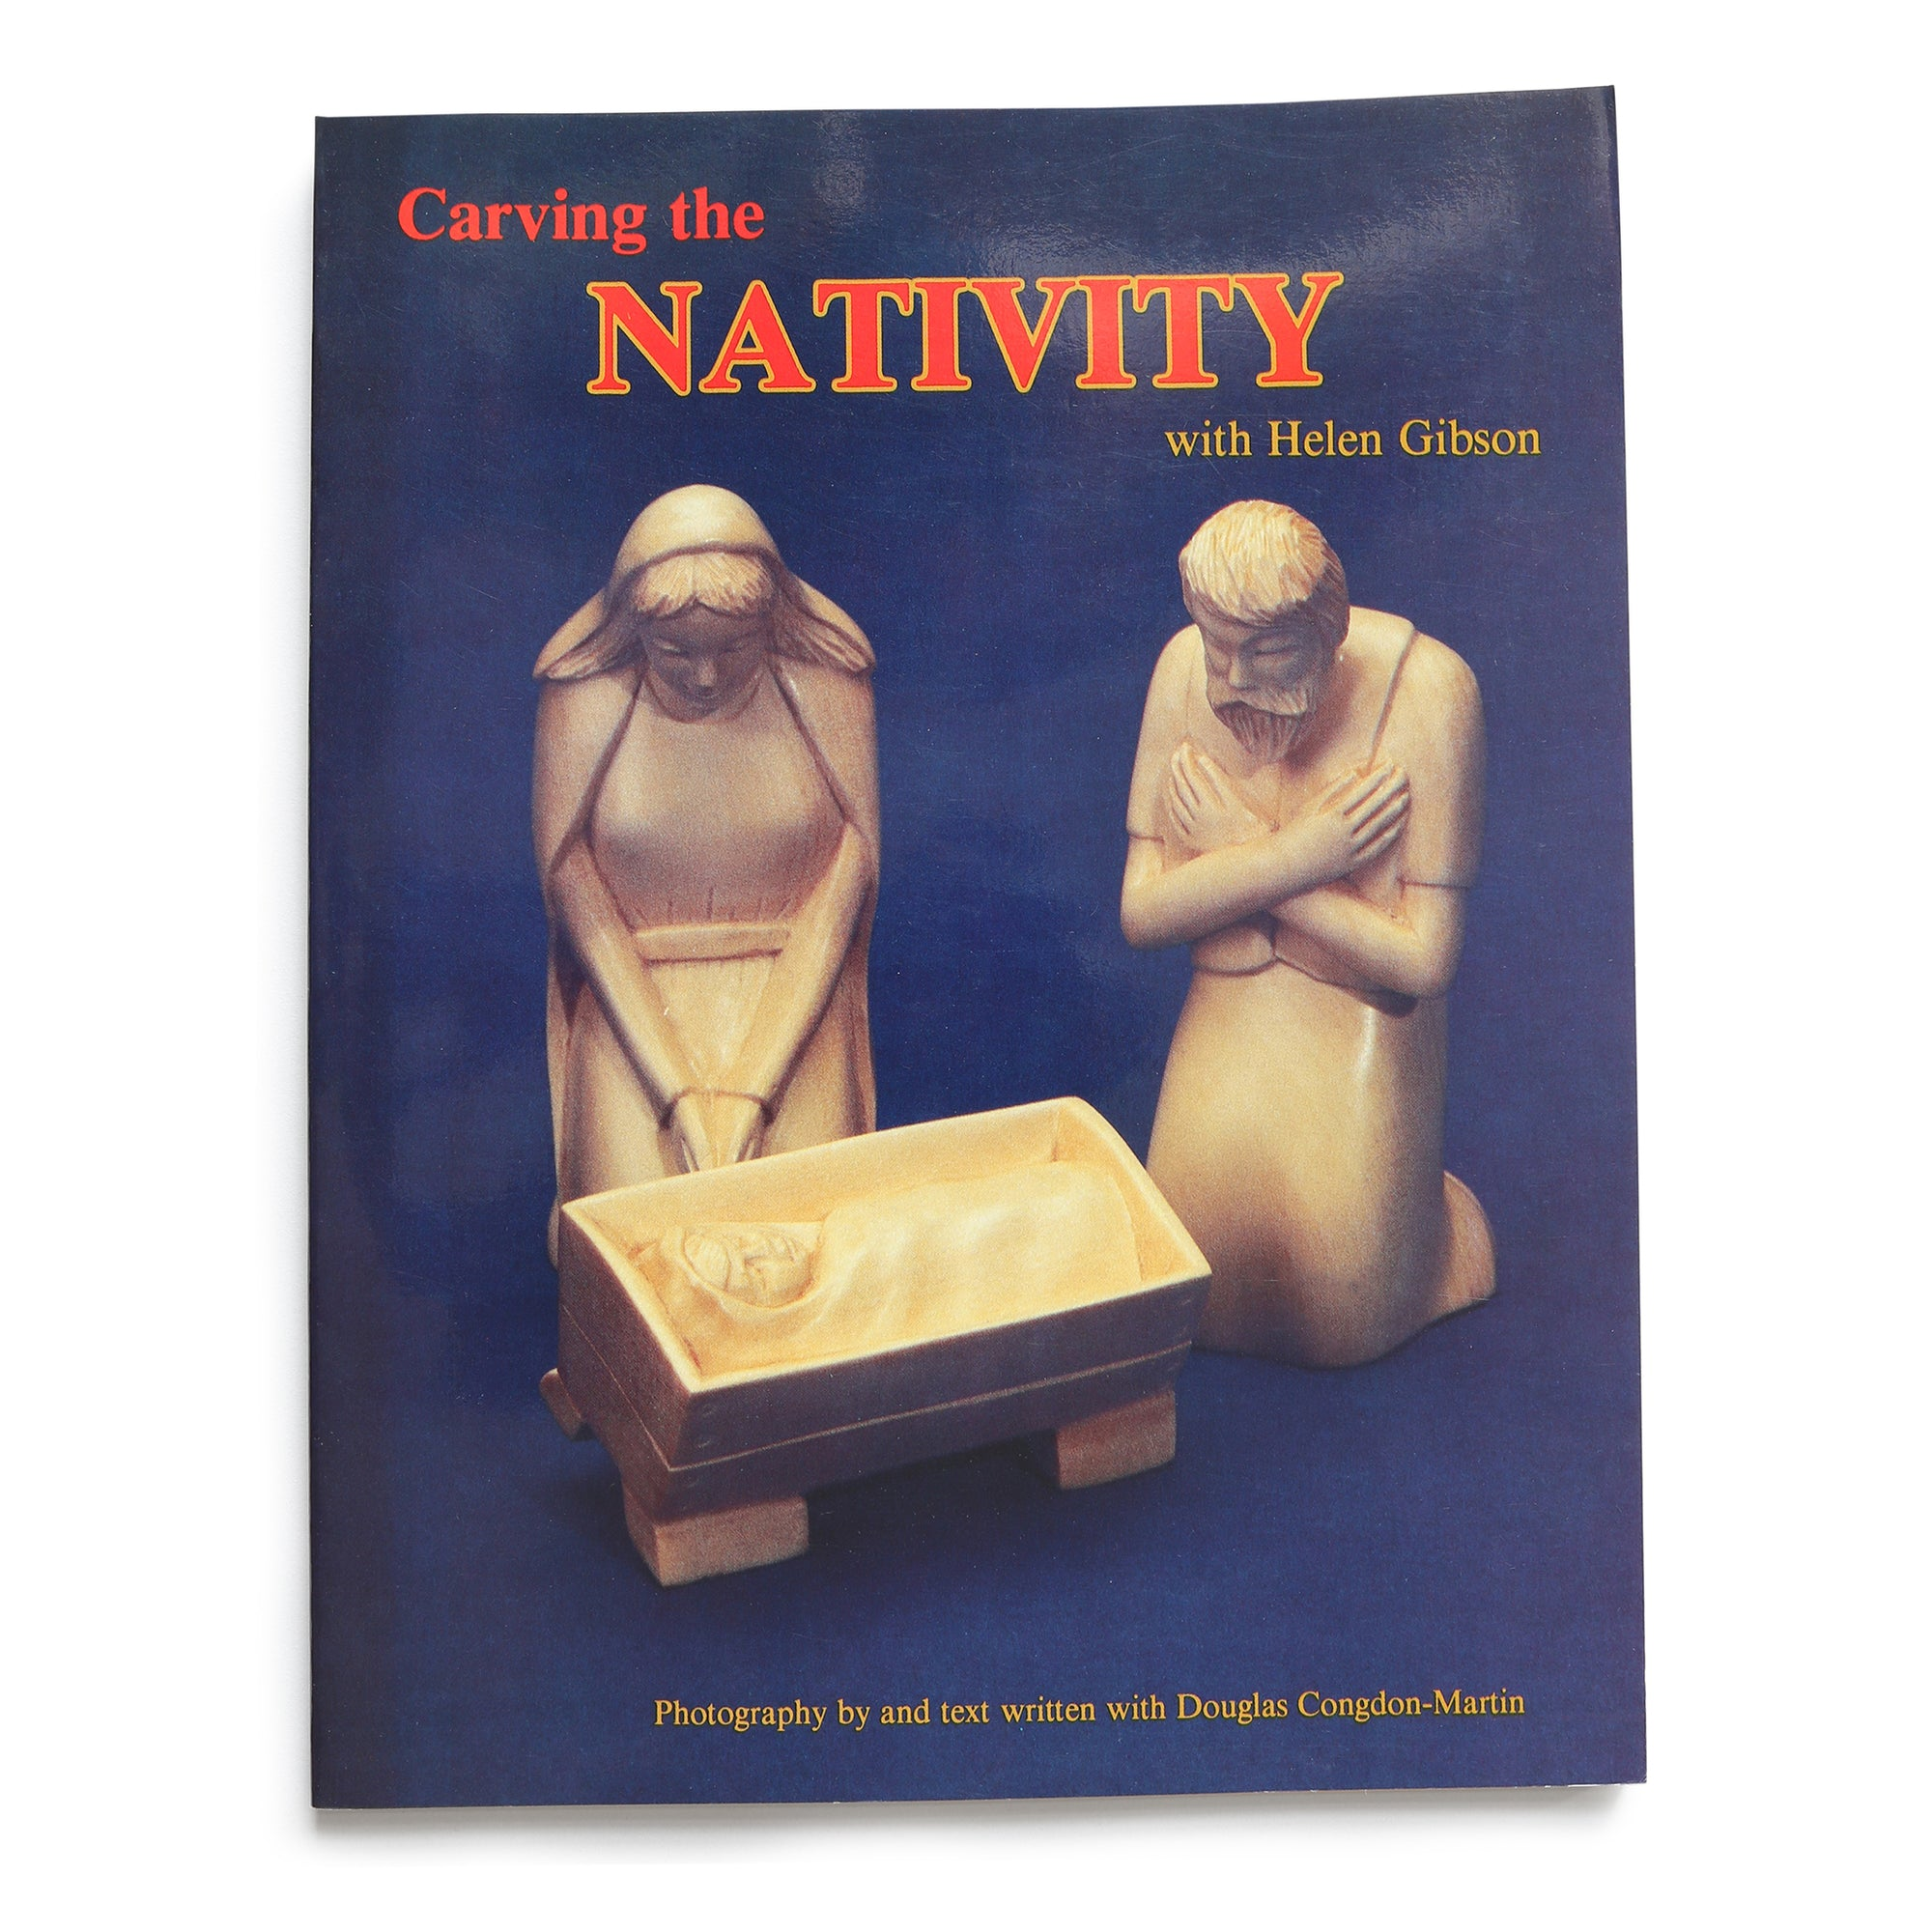 Carving the Nativity